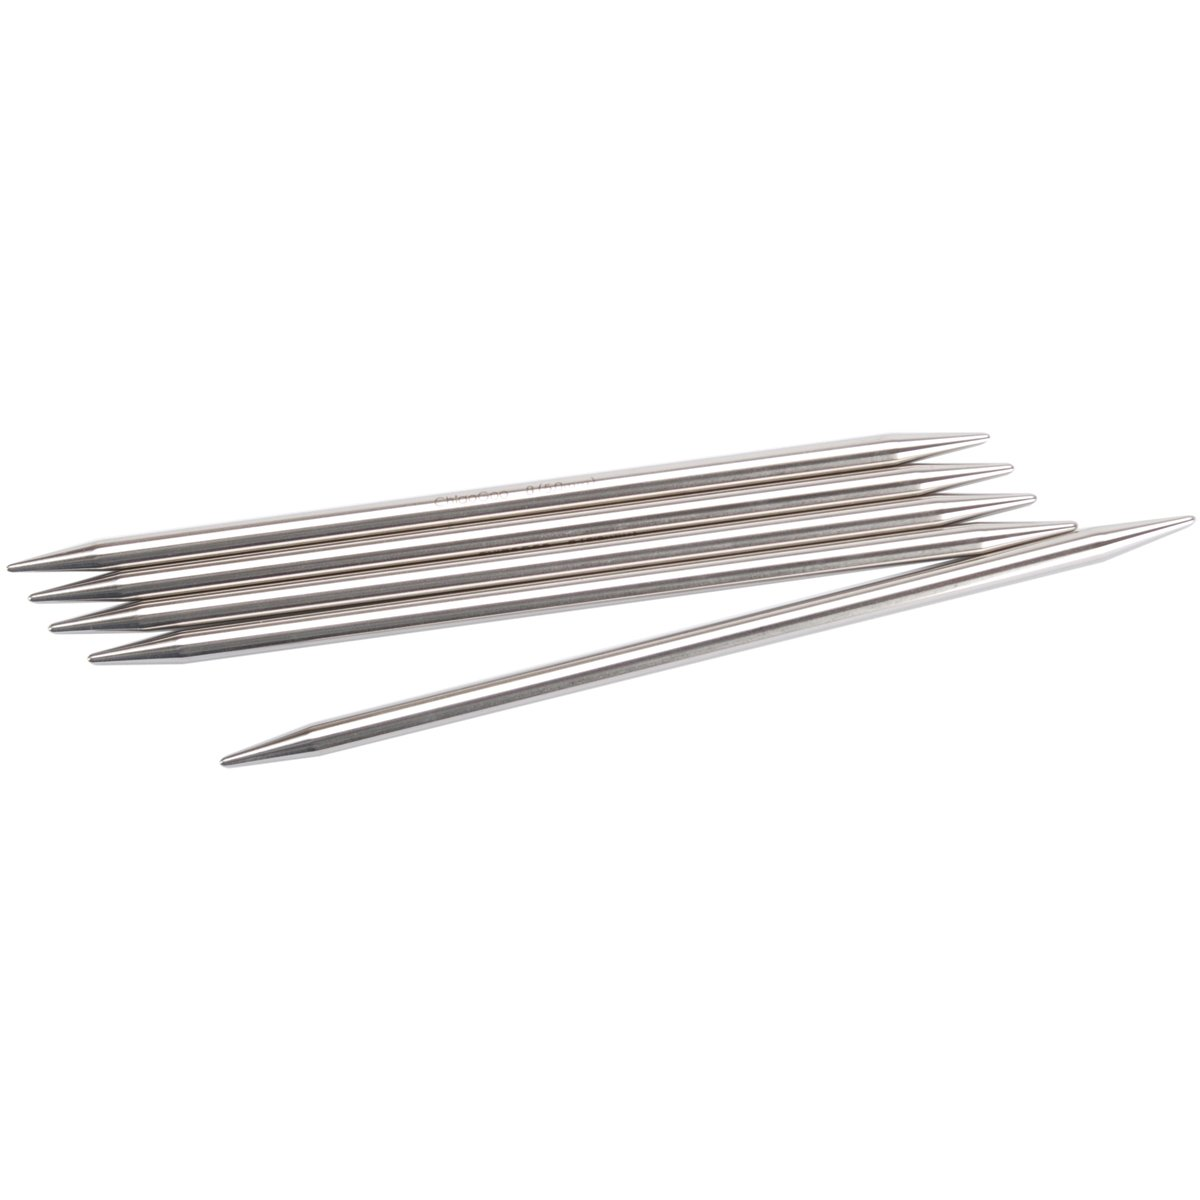 ChiaoGoo 6-Inch Double Point Stainless Steel Knitting Needles, 2.5/3mm 6006-2.5